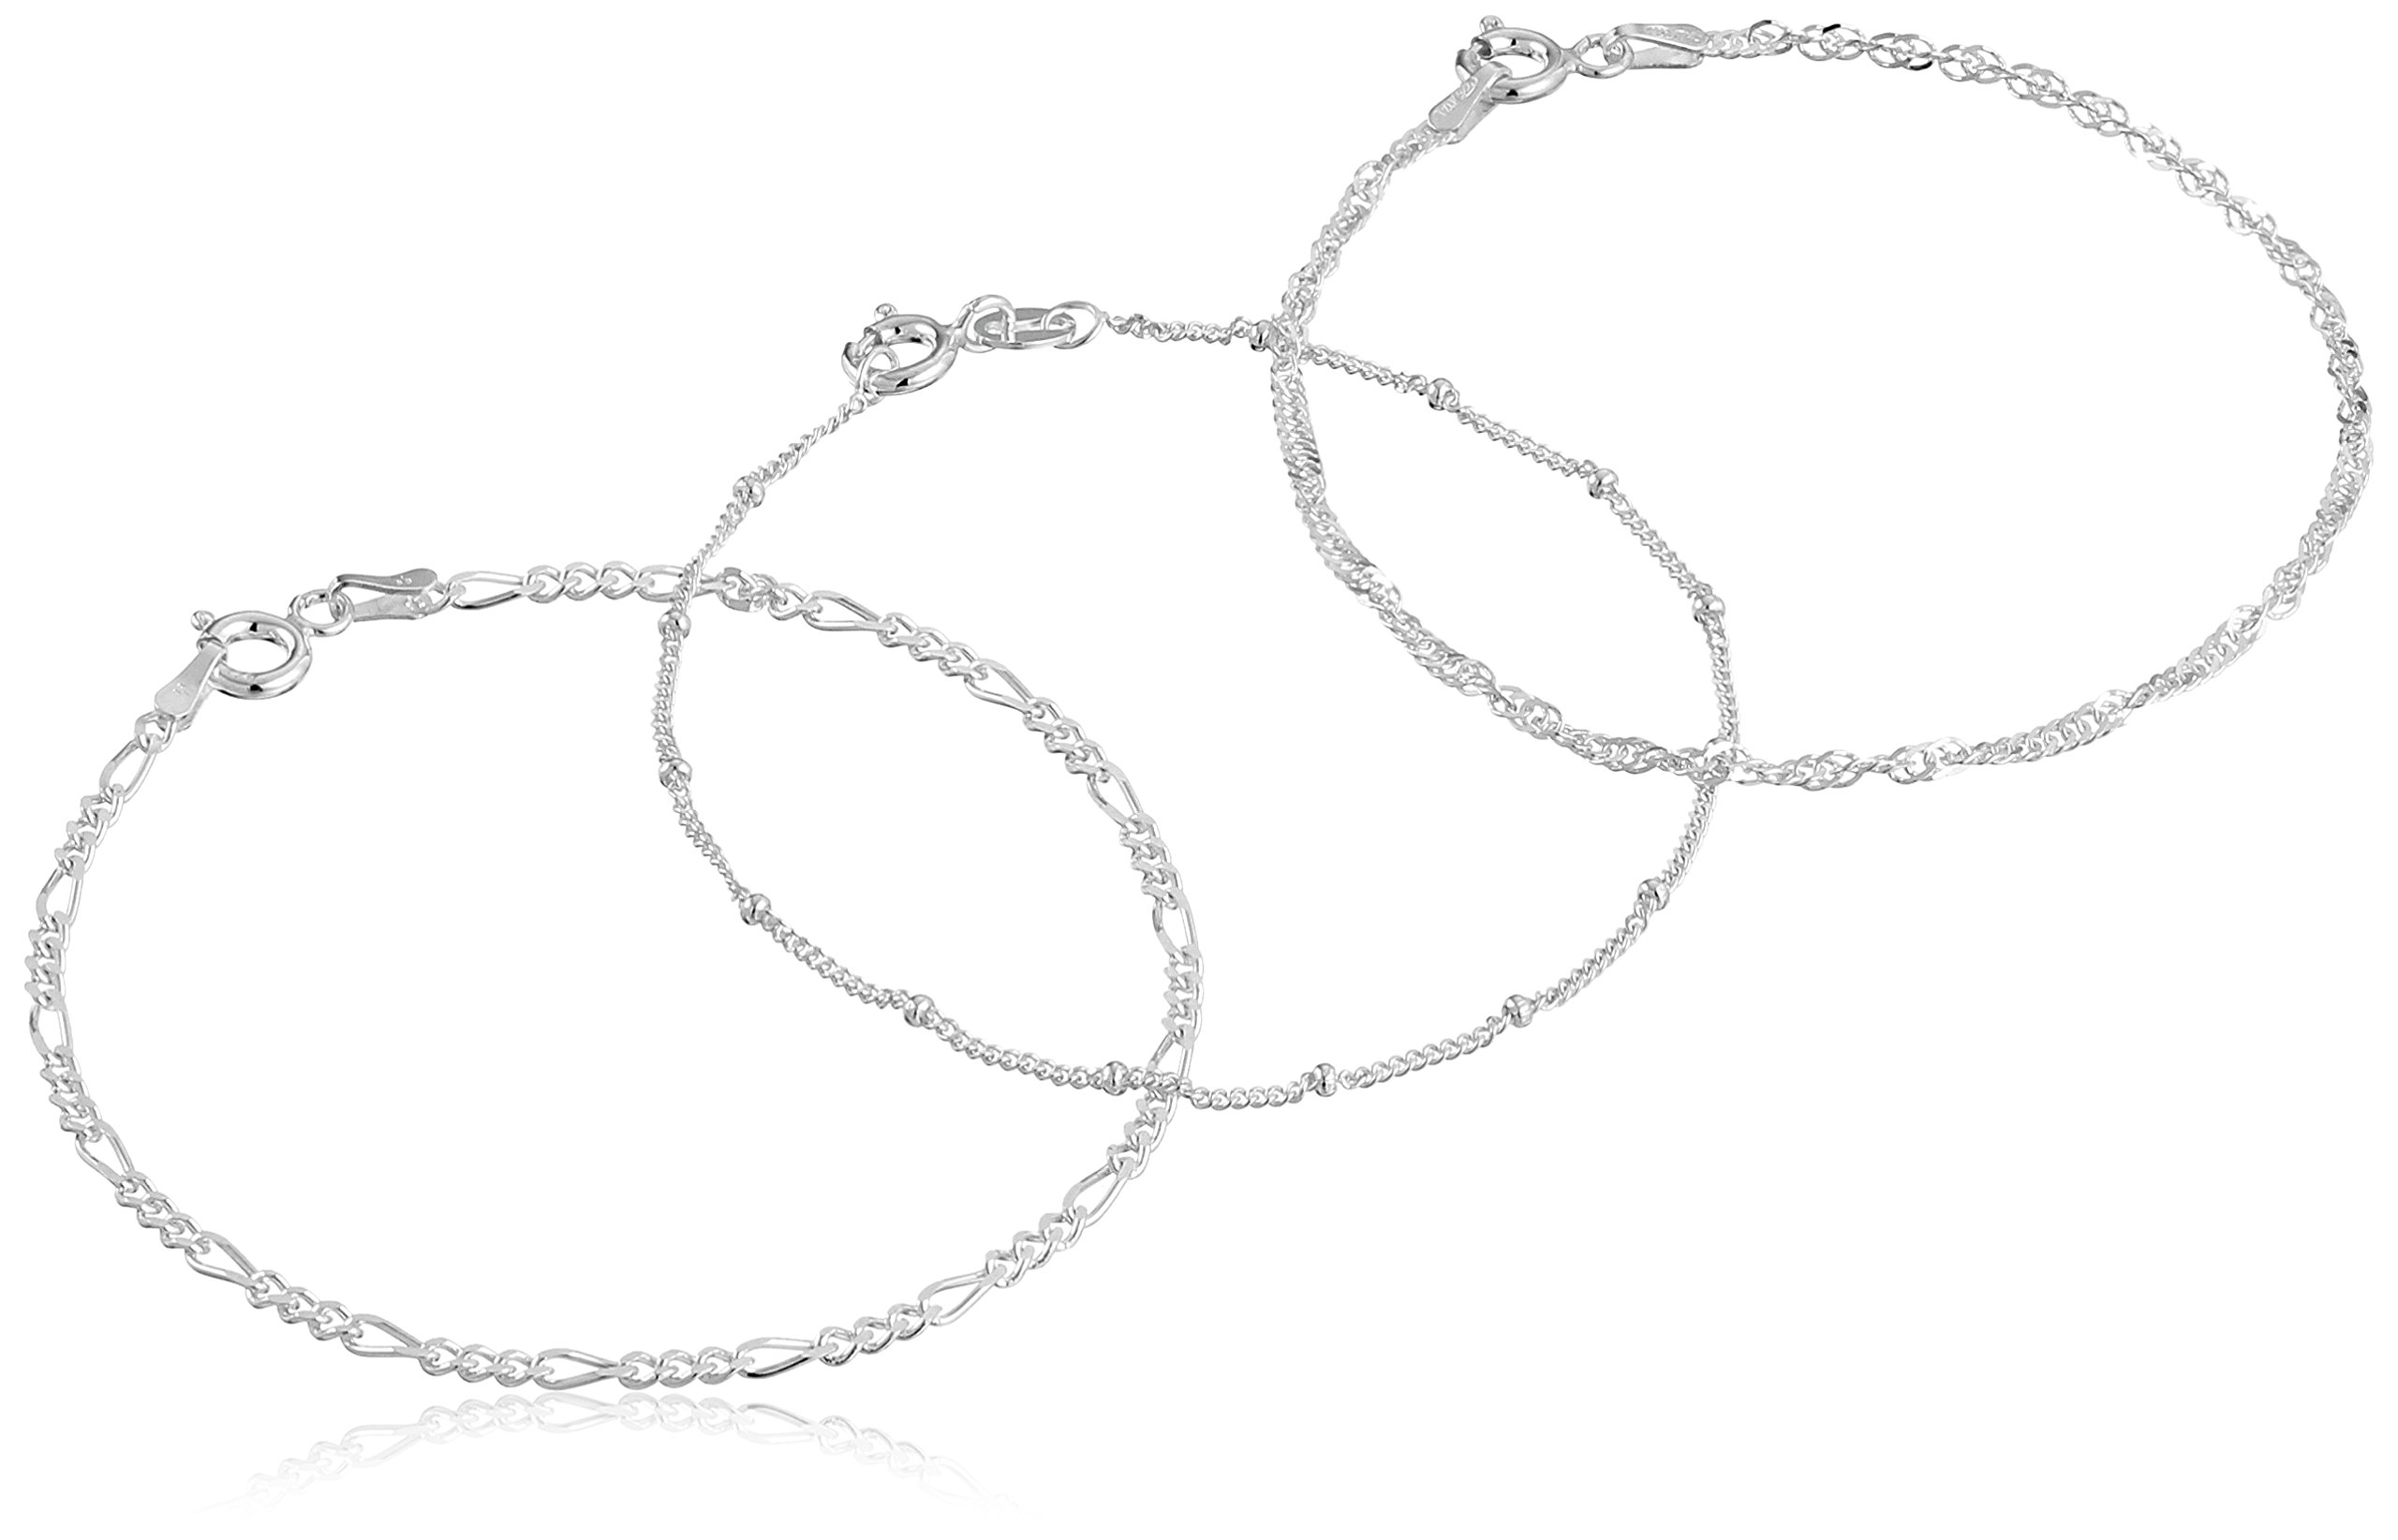 .925 Sterling Silver Figaro, Bead Station and Singapore Chain Bracelet Set size 7'' by Amazon Collection